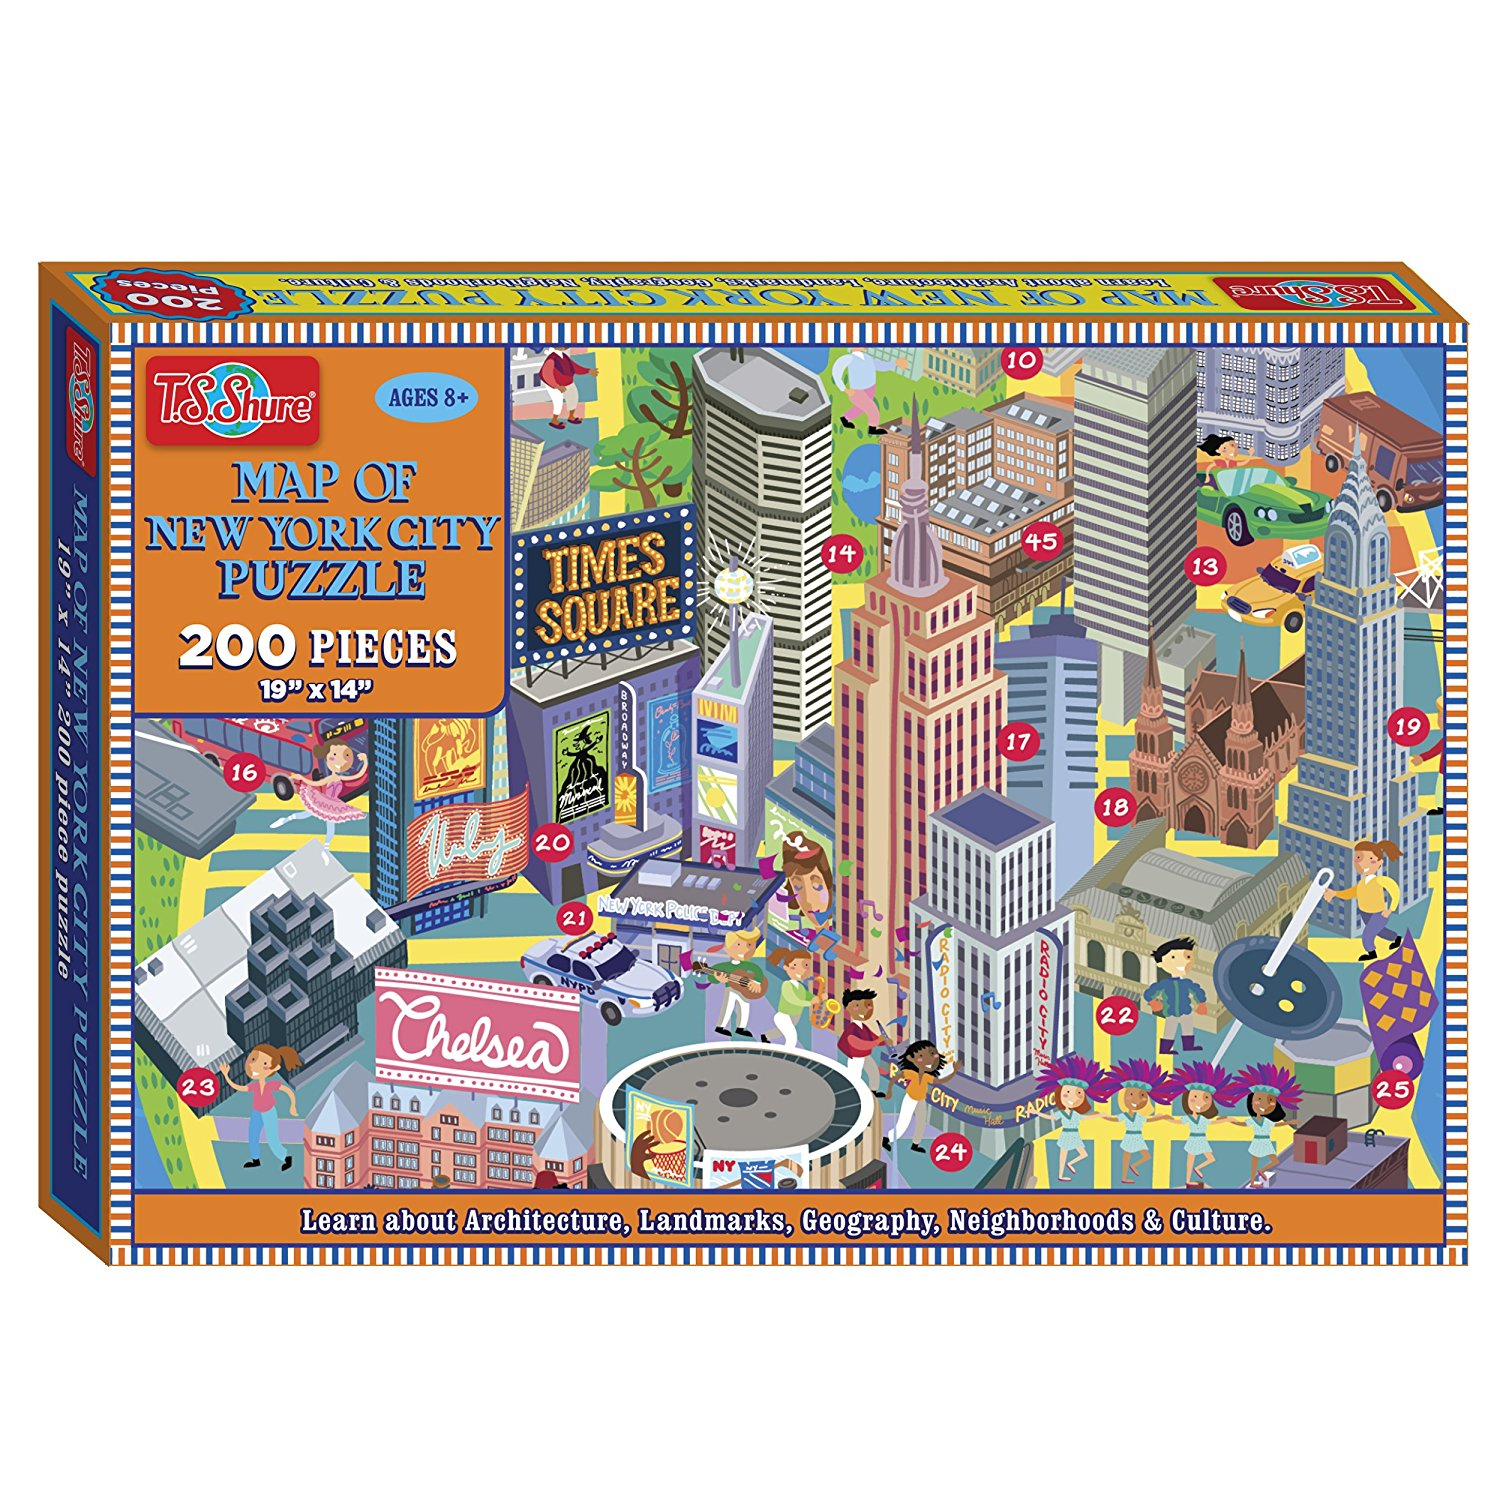 T.S. Shure Map of New York City 200 Piece Jigsaw Puzzle